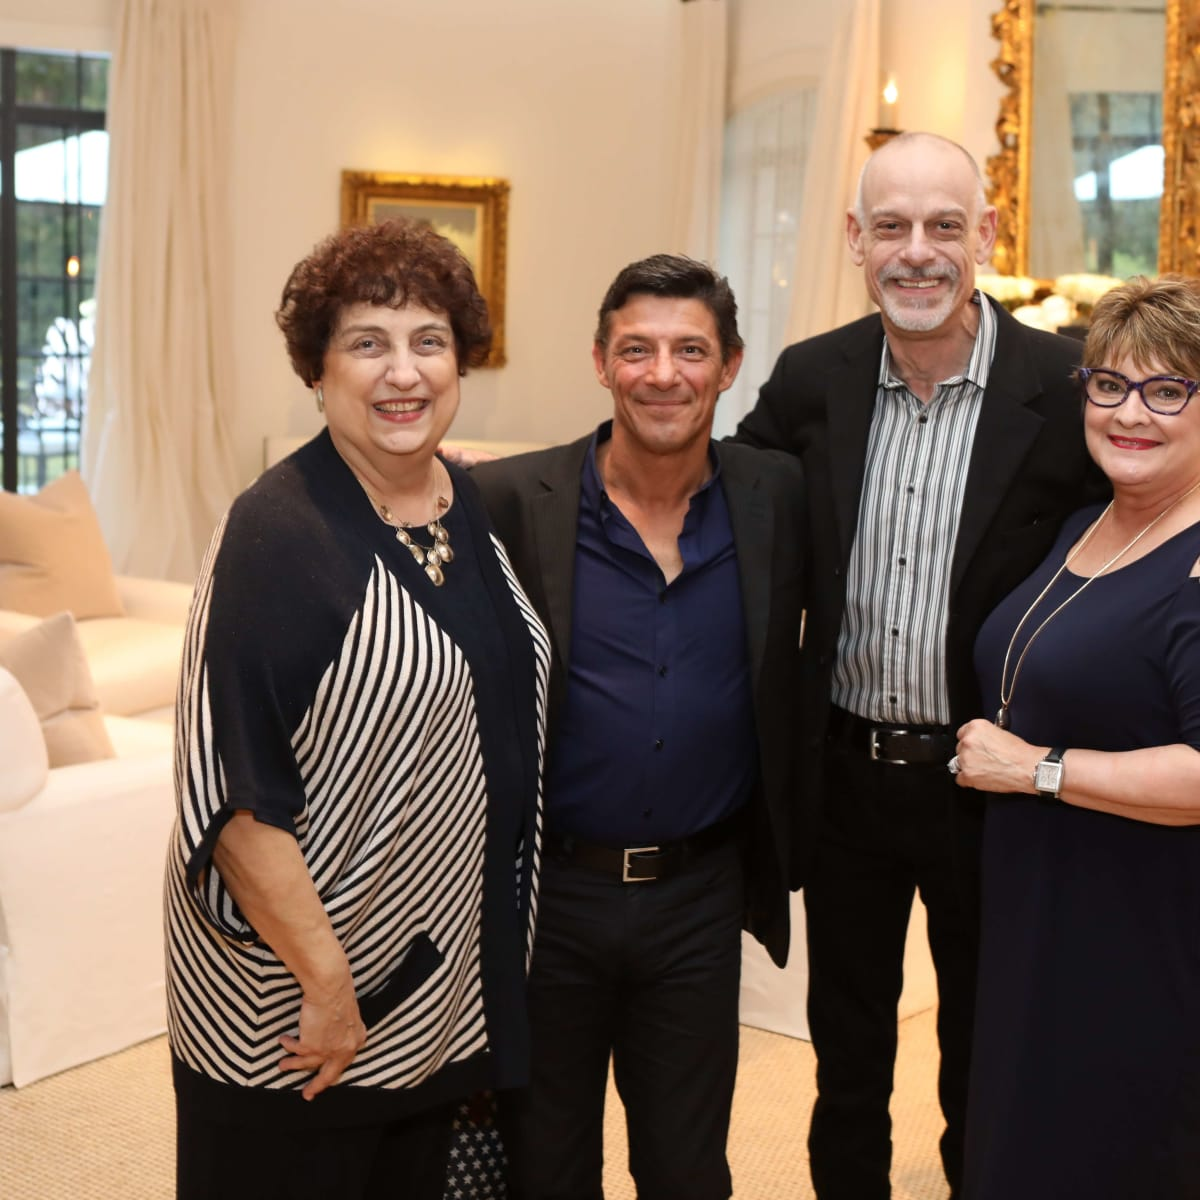 Houston, Cynthia and Anthony Petrello cocktail reception for Tommy Tune, Nov. 2016, Maureen Patton, Patrick Rinn, Michael Biagi, Cissy Segall Davis